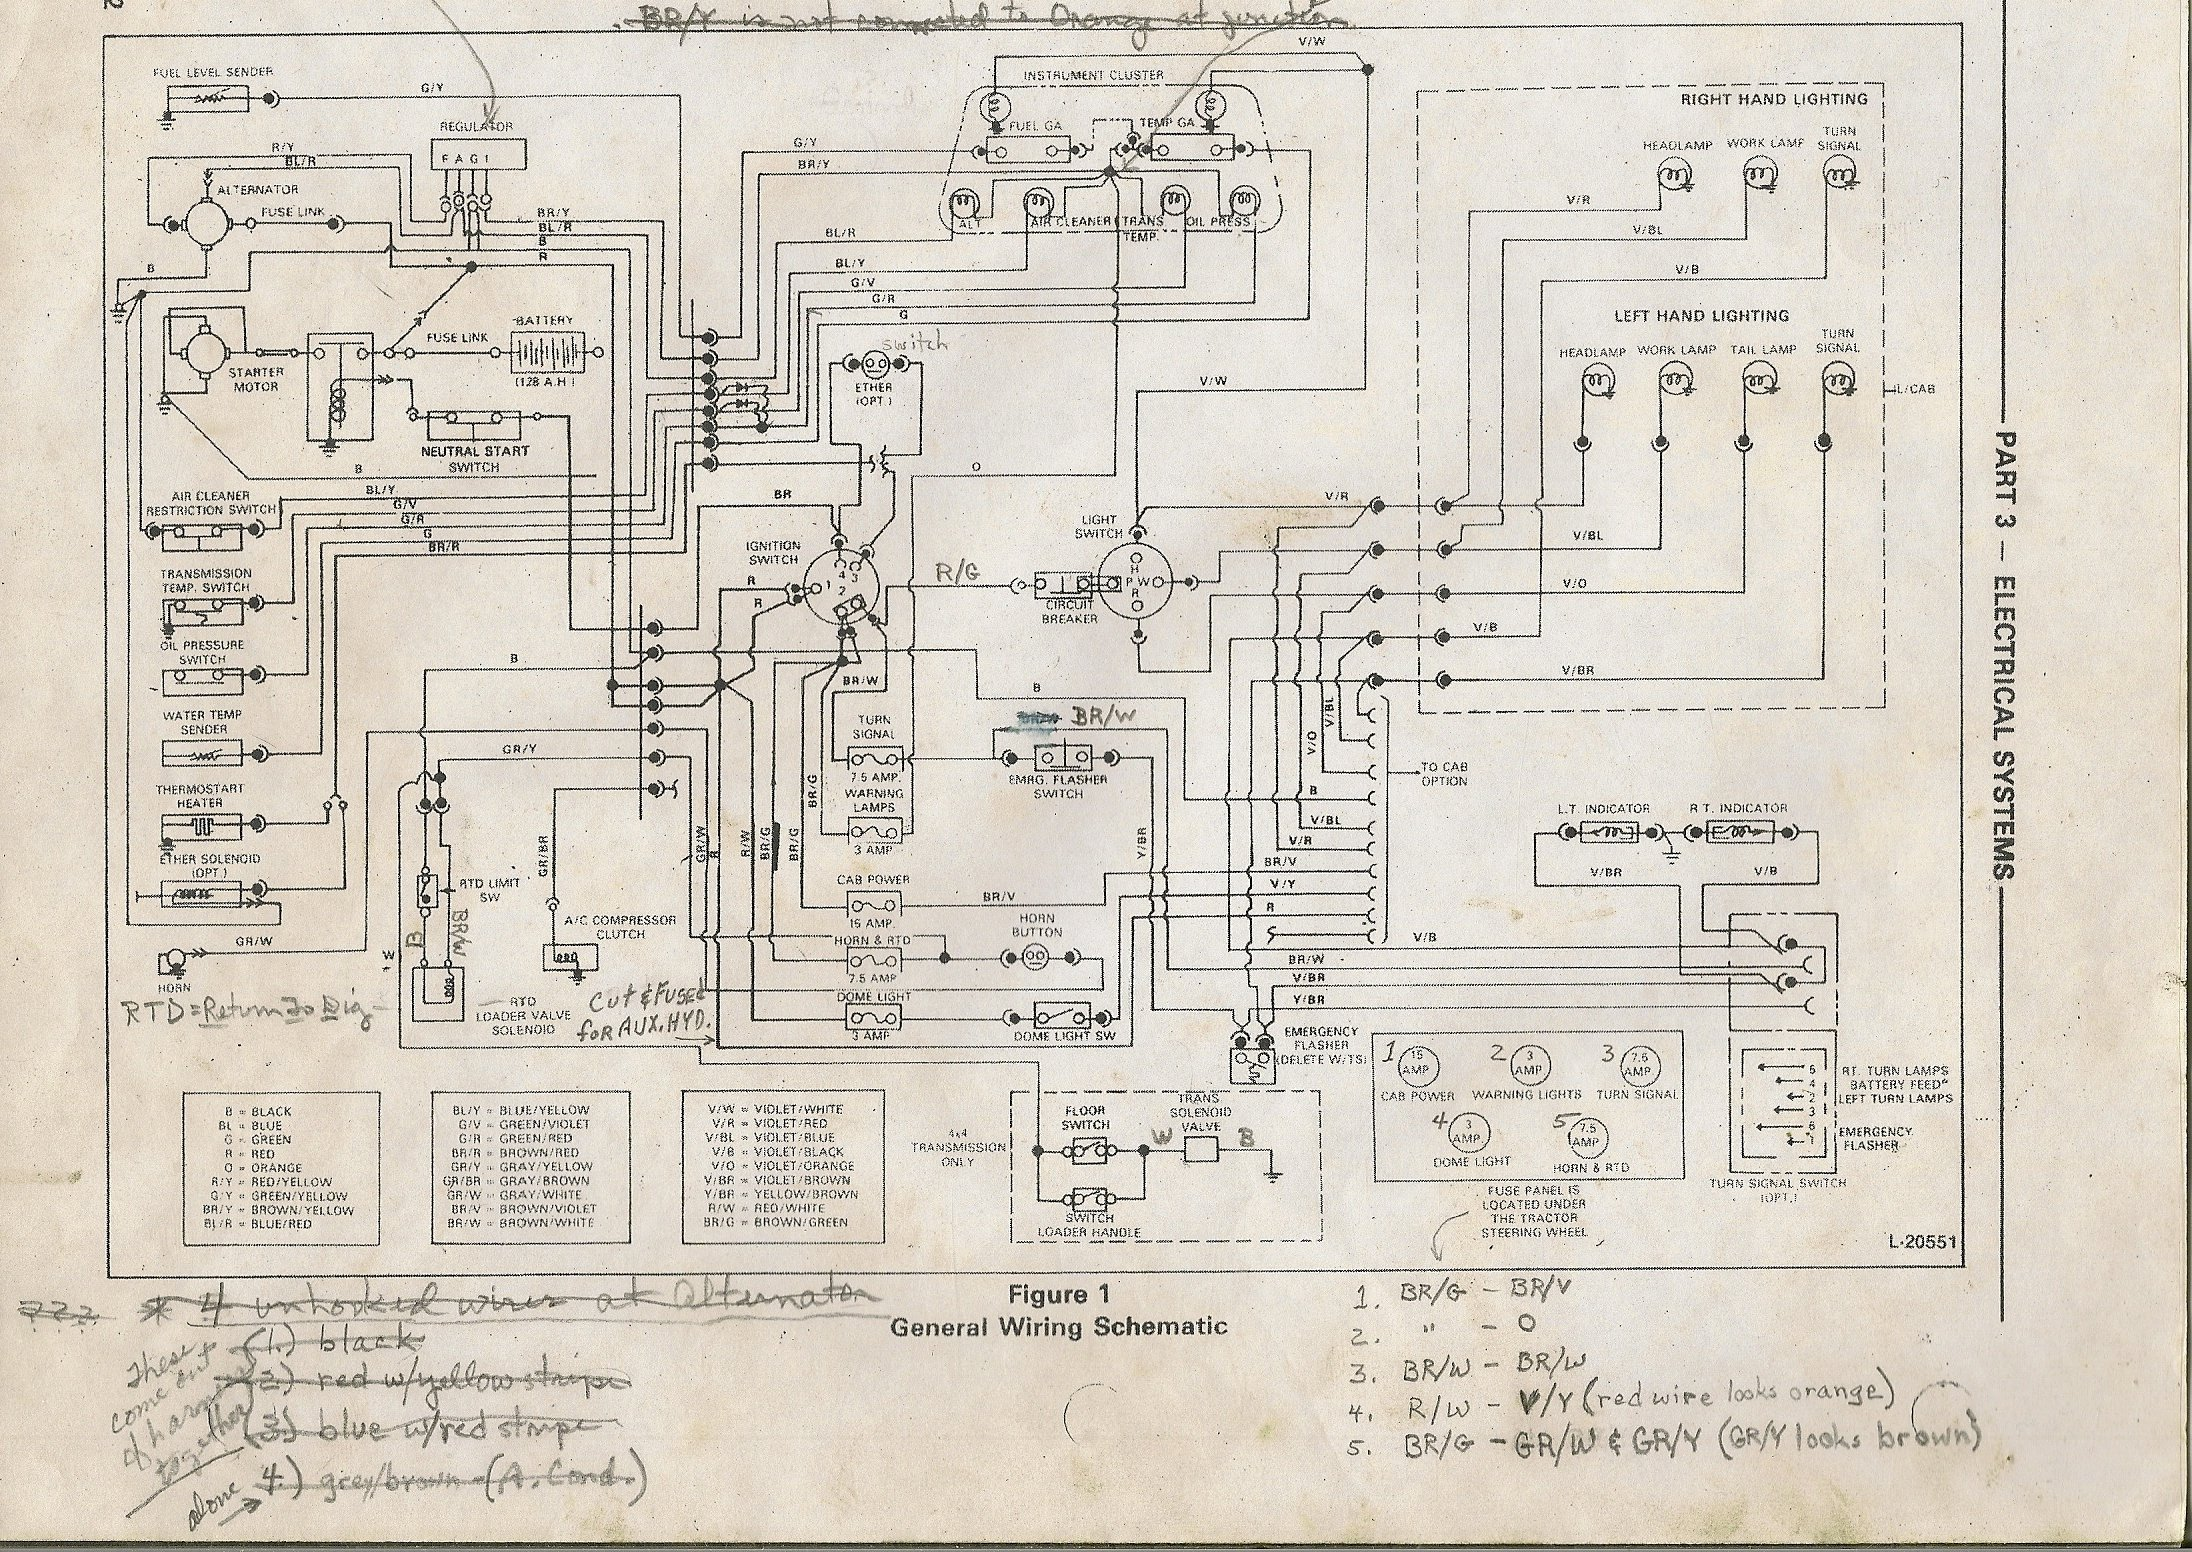 model a ford headlight wiring diagram i have 1987 ford model 655a backhoe that i can get only